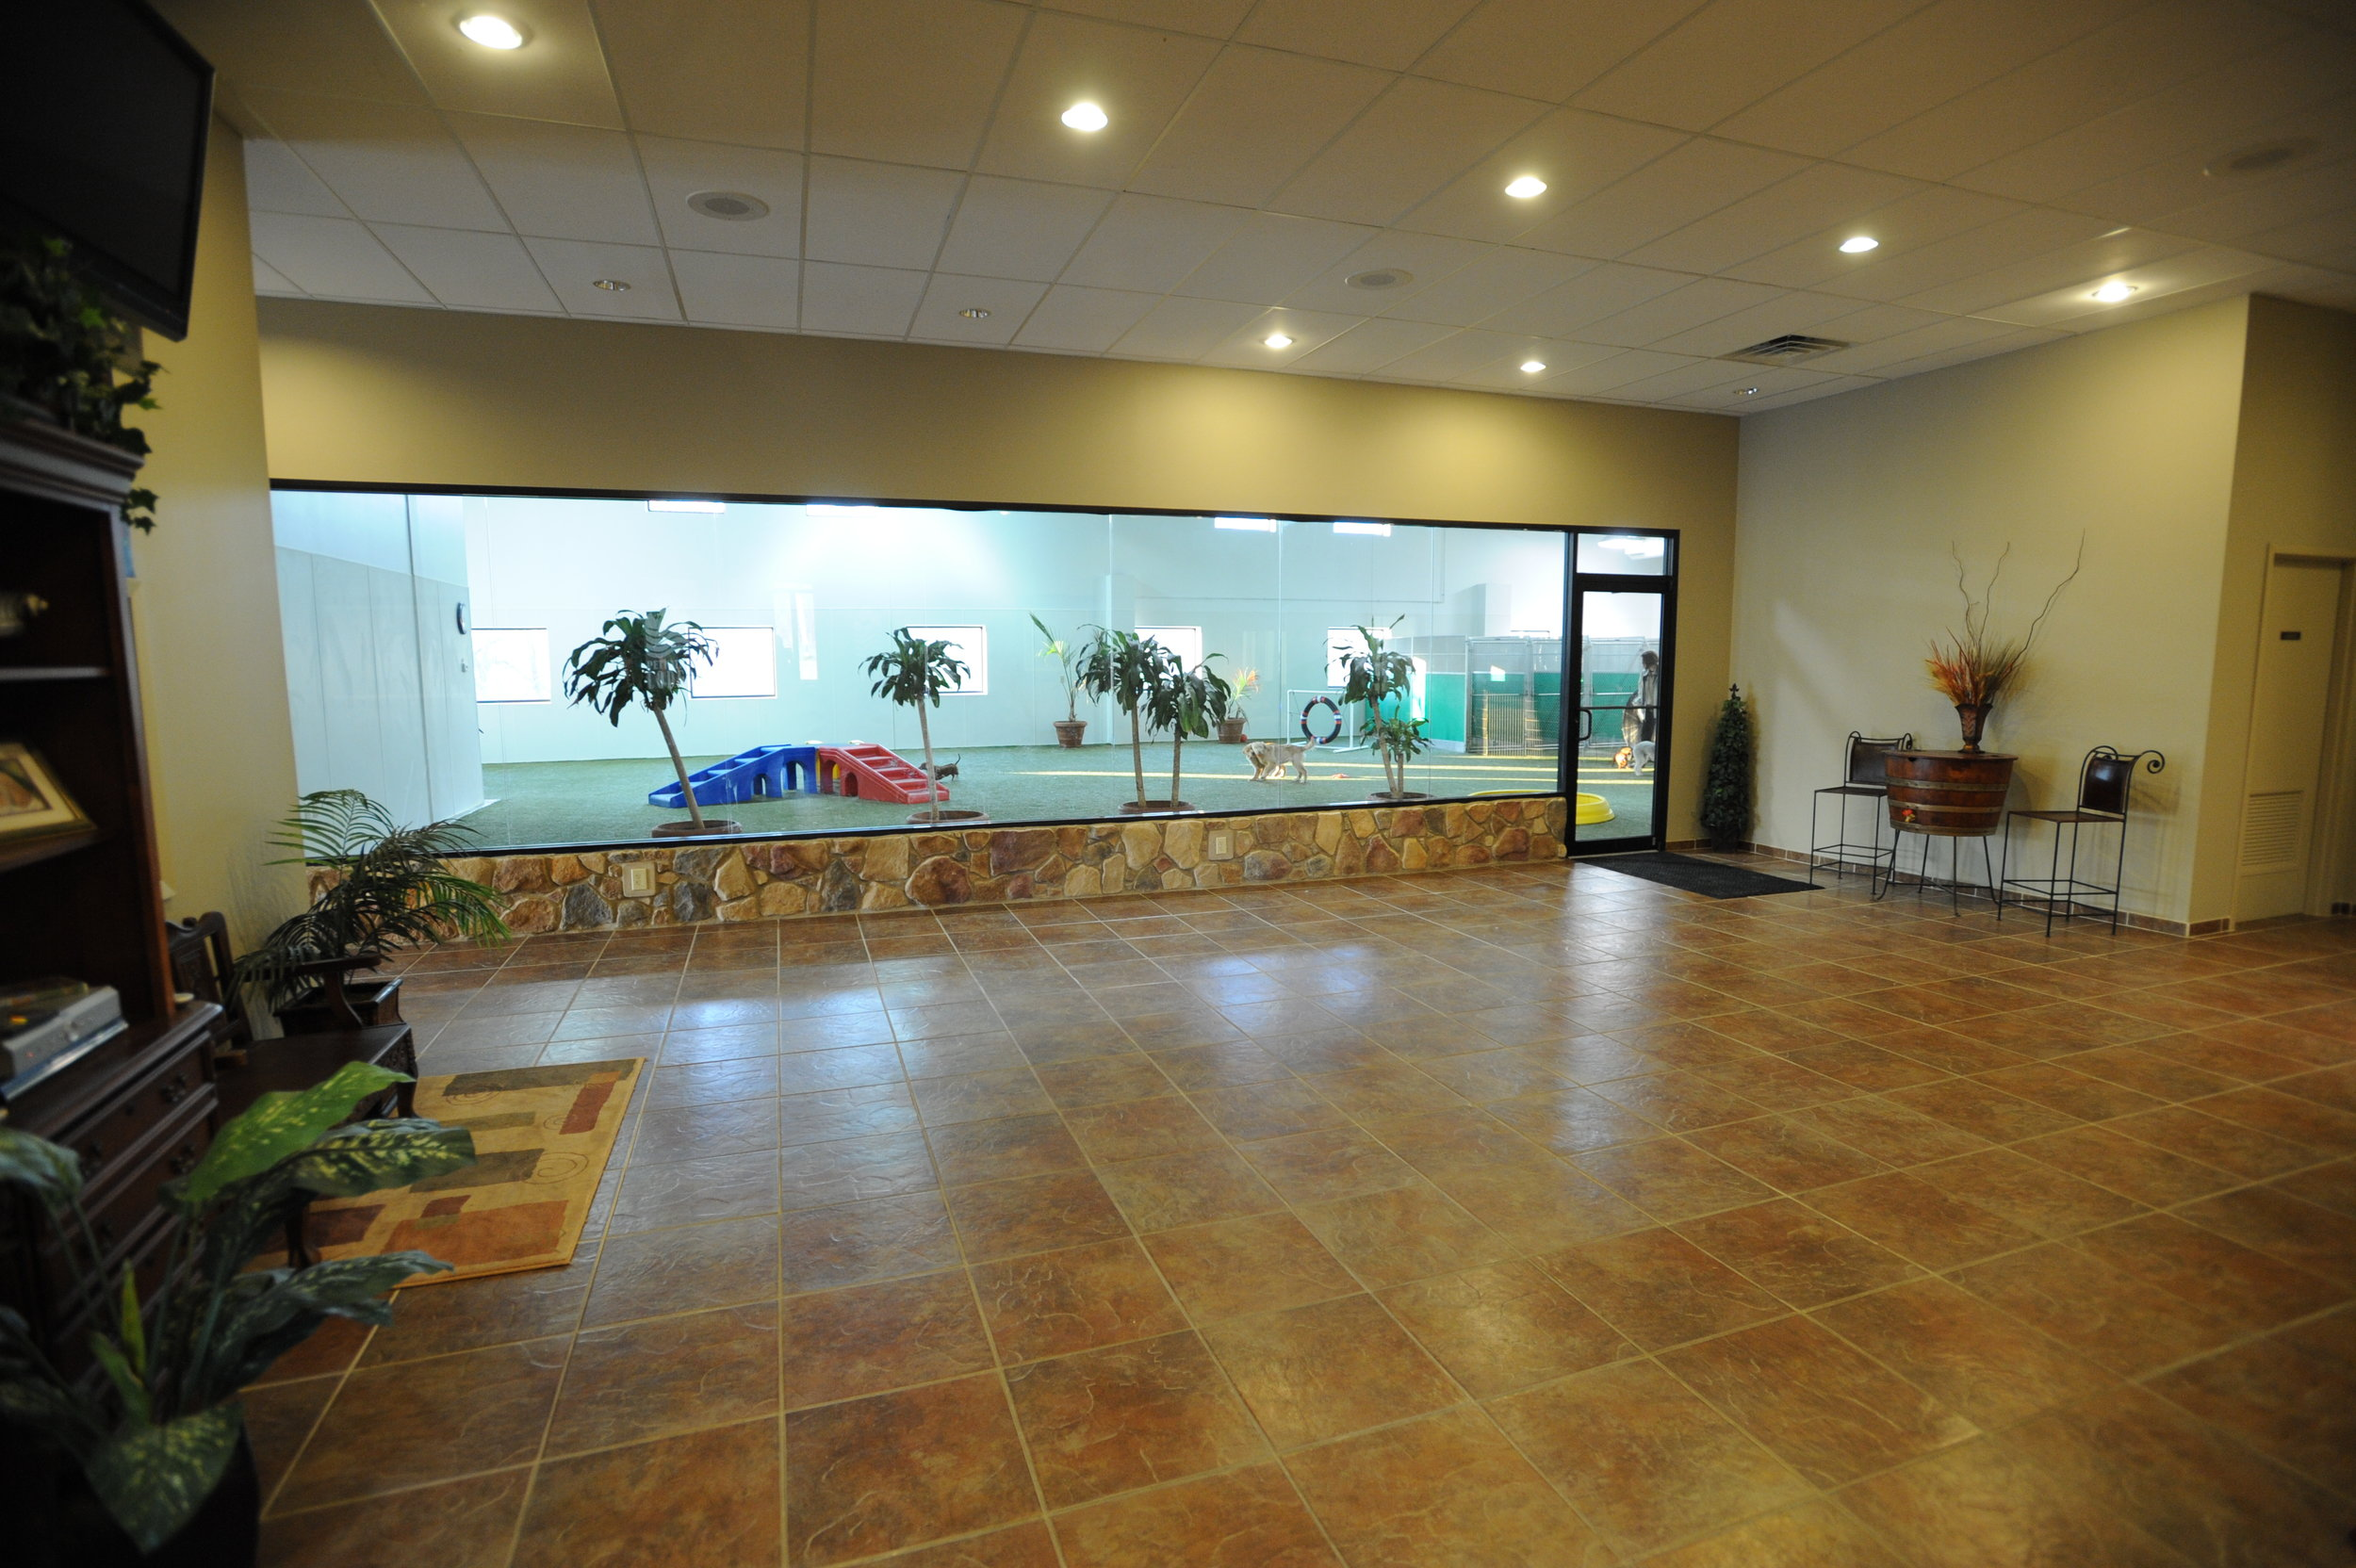 Our spacious facility paired with our unique interior is something that makes Pet Nation Lodge so special. The warmth you feel when you're here is something we pride ourselves in.